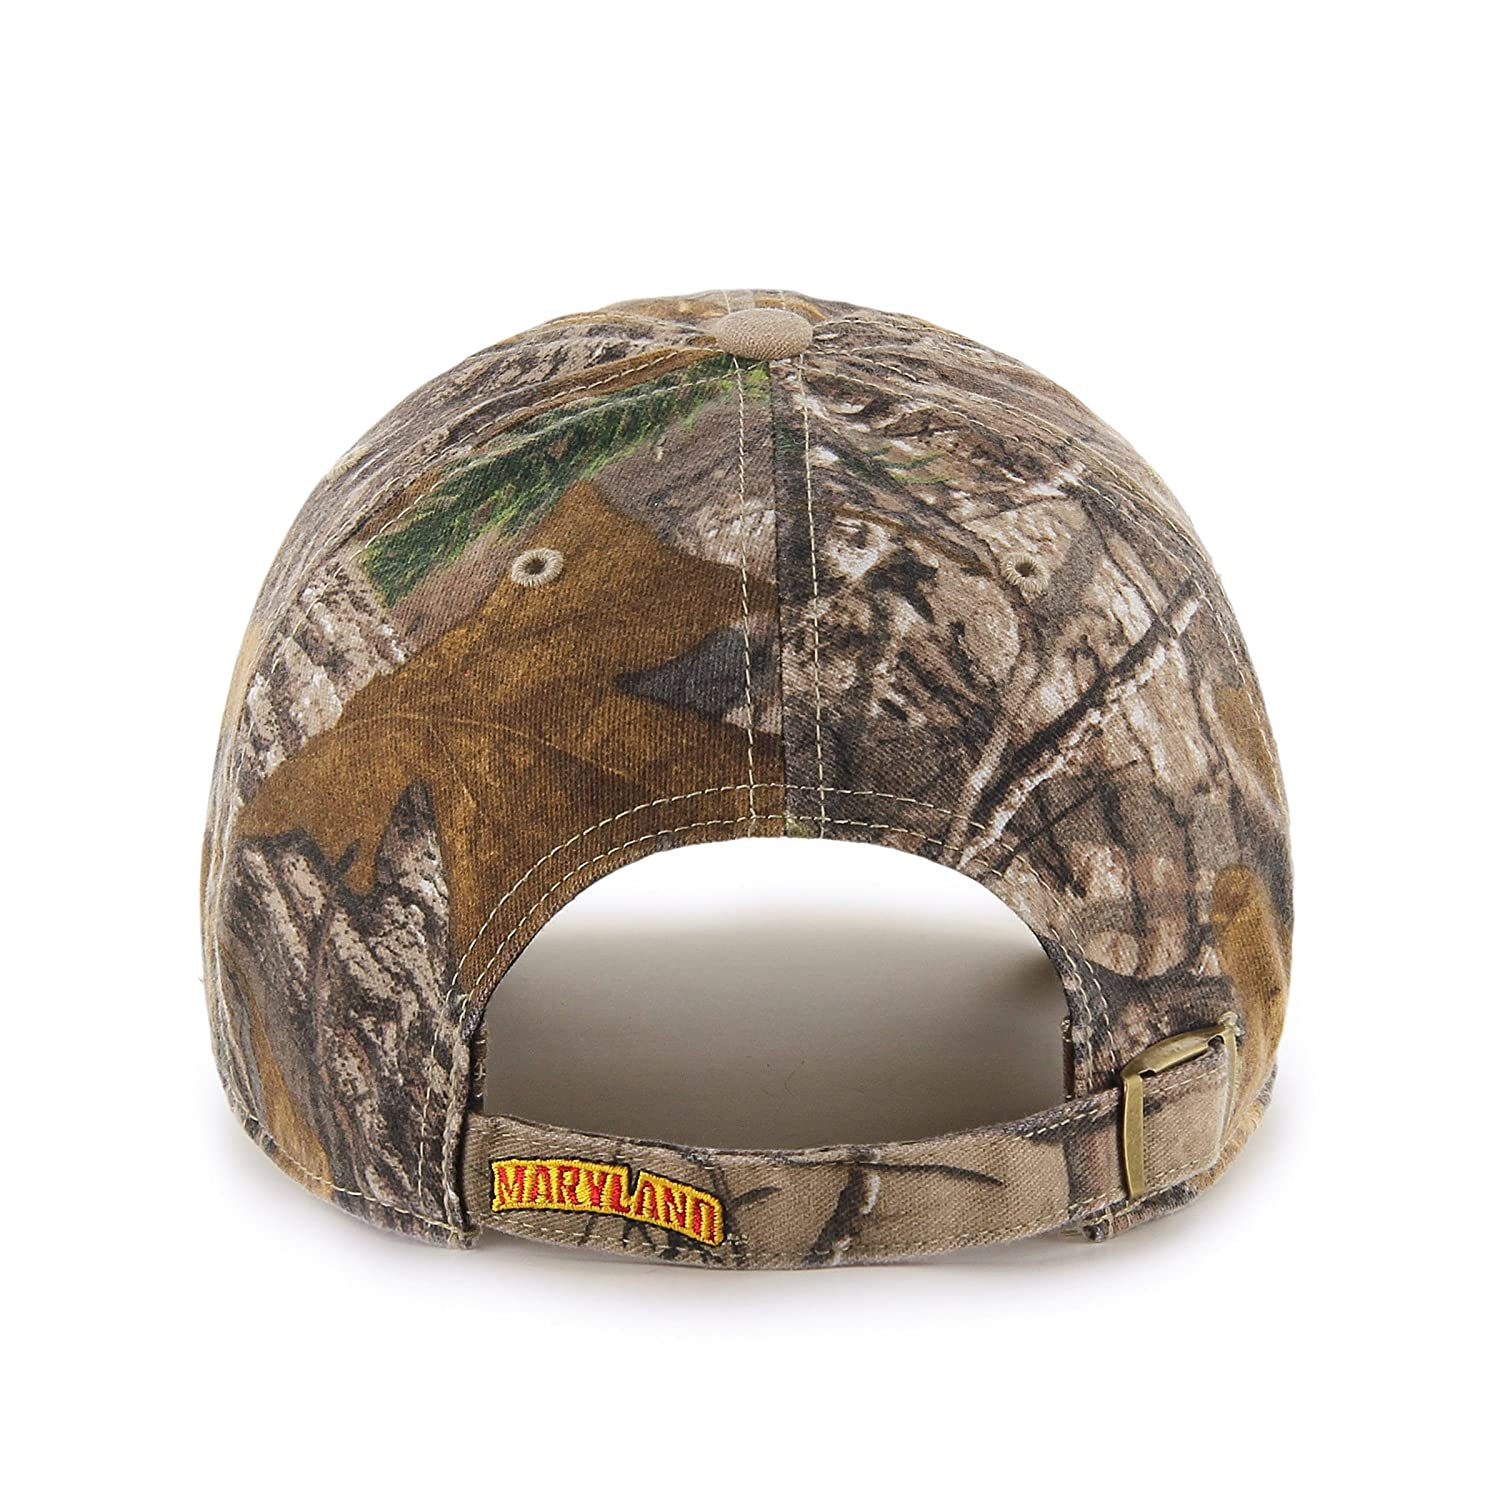 new product a7f4e 4994f Amazon.com    47 NCAA Maryland Terrapins Realtree Clean Up Adjustable Hat,  One Size, Realtree Camo   Sports   Outdoors